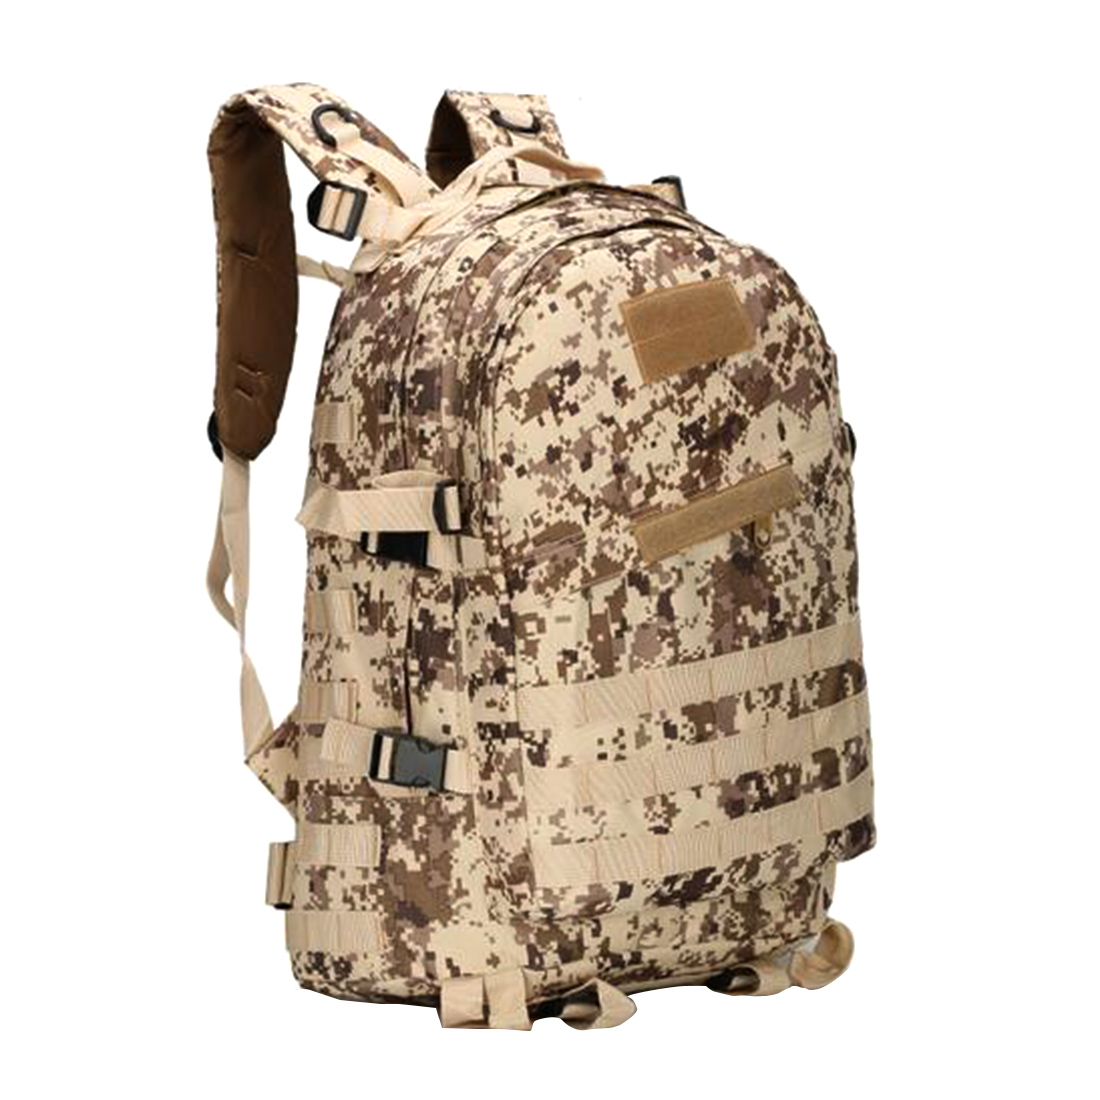 Outdoor Sport Nylon Military Tactical Backpack tactical backpack Rucksack Travel Bag Camping Hiking Climbing Bag molle outdoor climbing bags military tactical backpack single shoulder bag sport backpack camping hiking bag travel rucksack bag